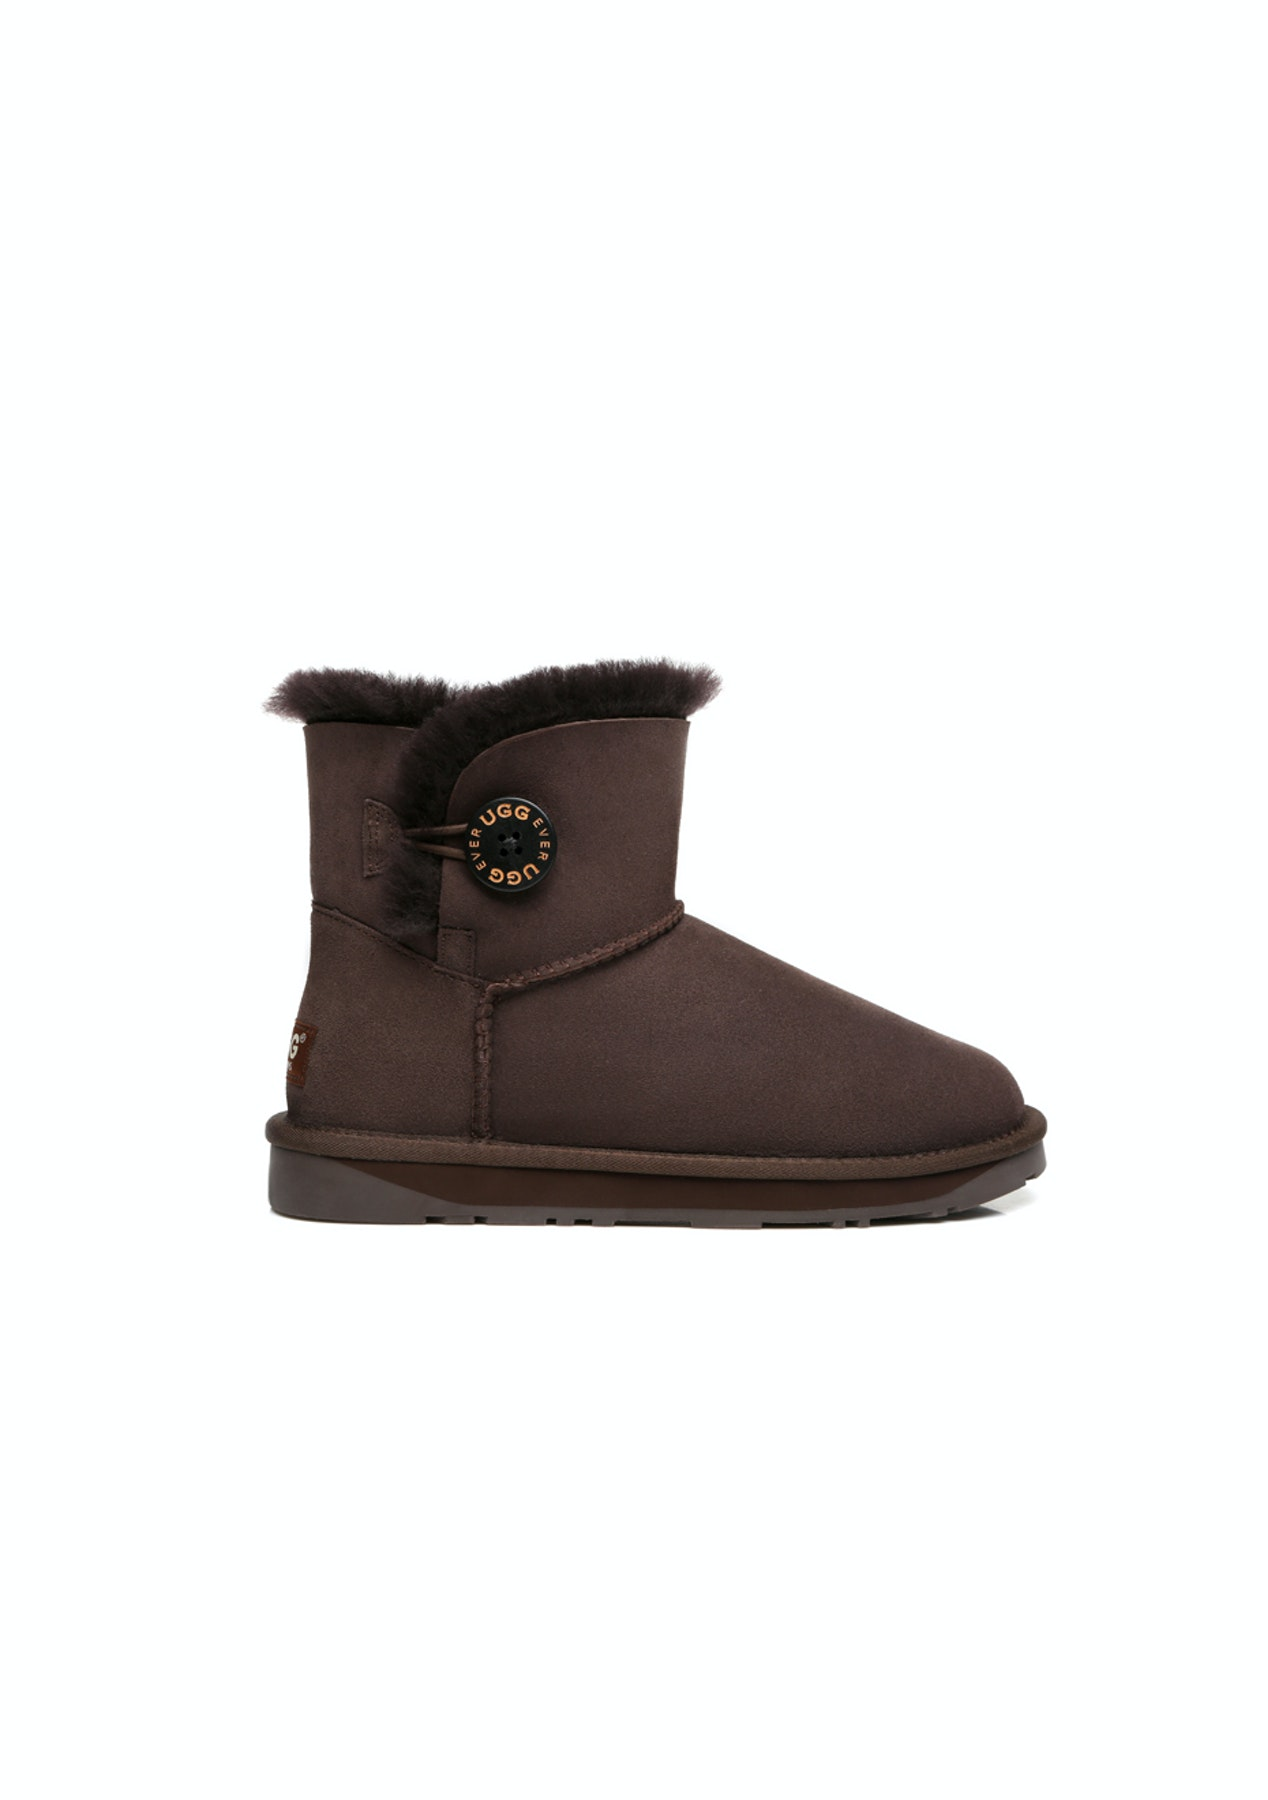 75a2b36b81ff Ever Uggs - Mini Button Chocolate - Onceit's Gone it's Gone Shoe Edition! -  Onceit